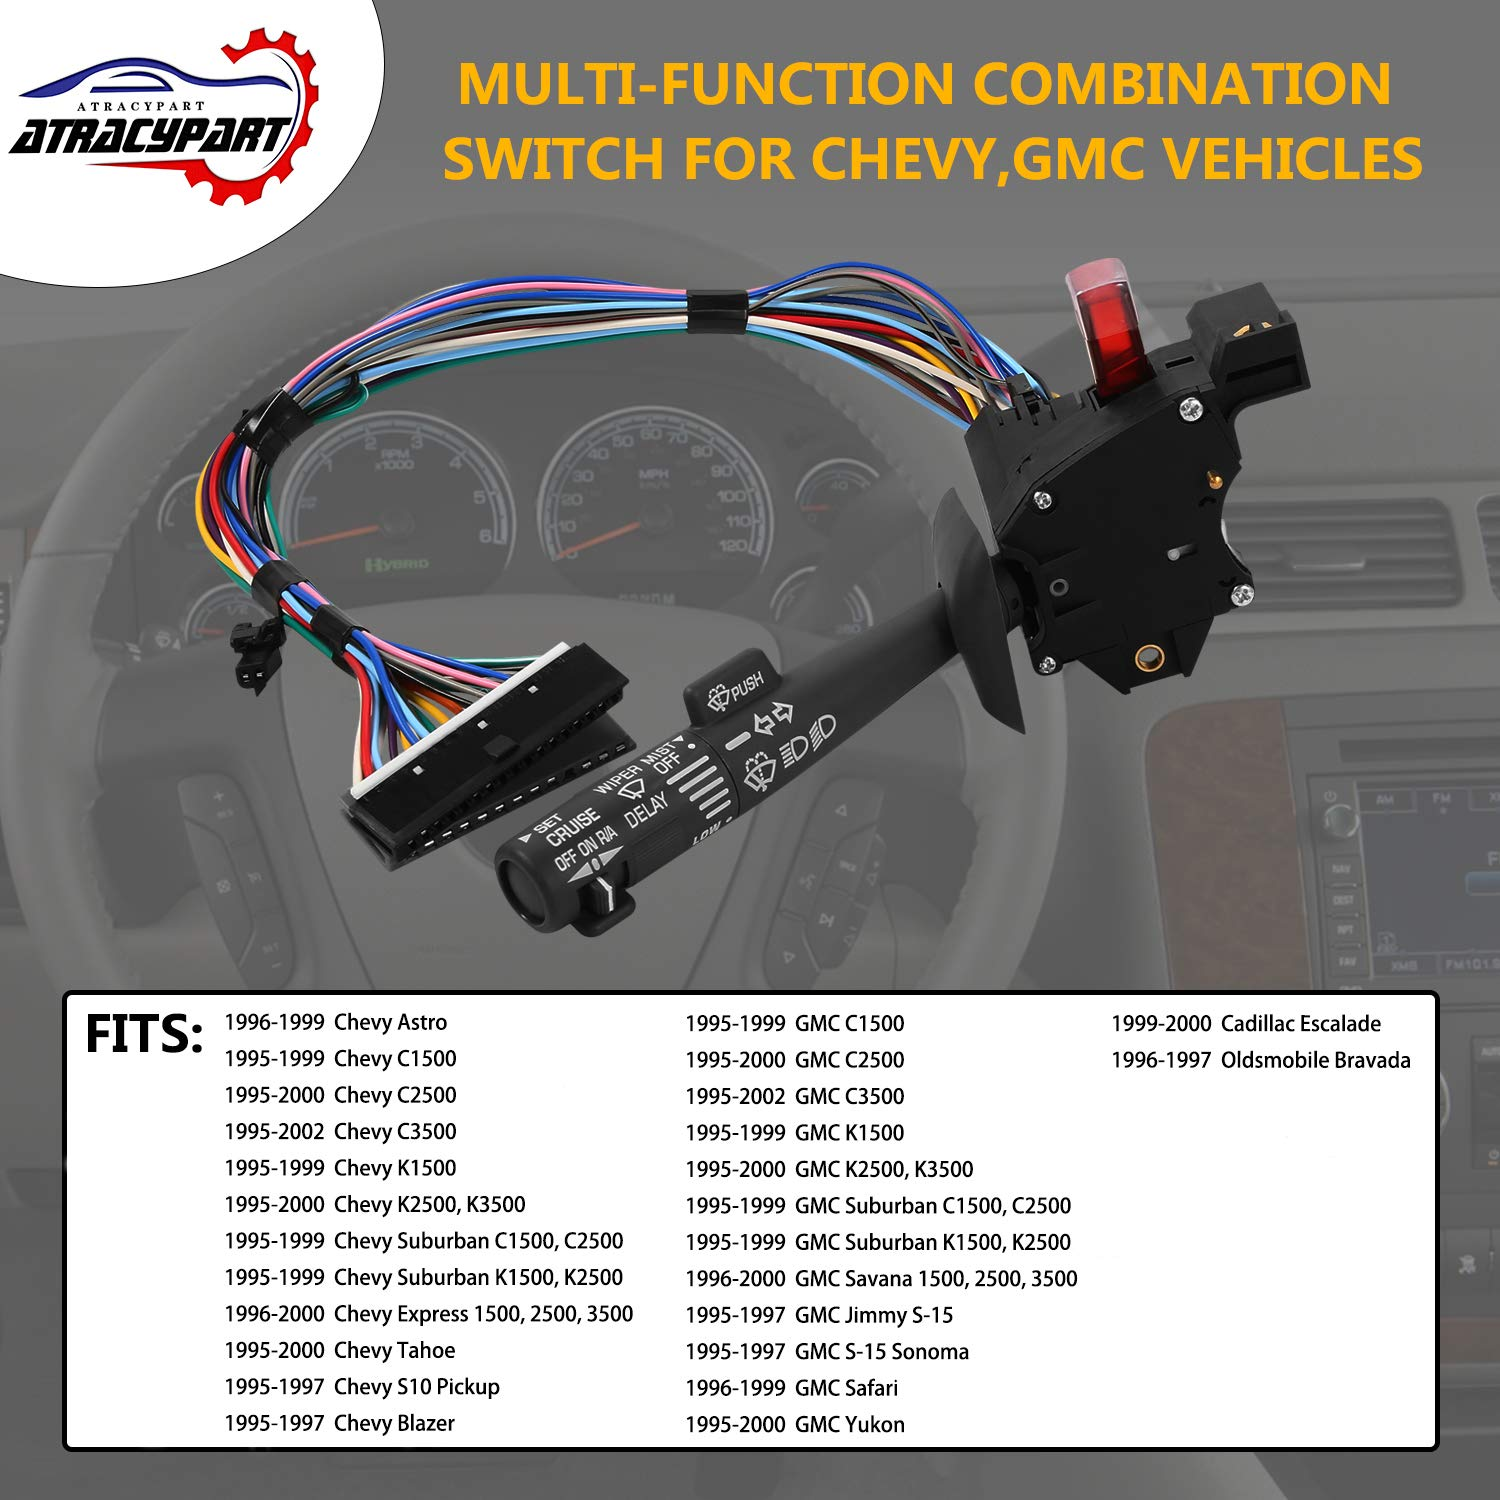 Multi Function Combination Switch For Chevy Tahoe 1995 Blazer Abs Wiring Suburban K1500 Sierra Replaces Part 2330814 26100985 26036312 Turn Signal